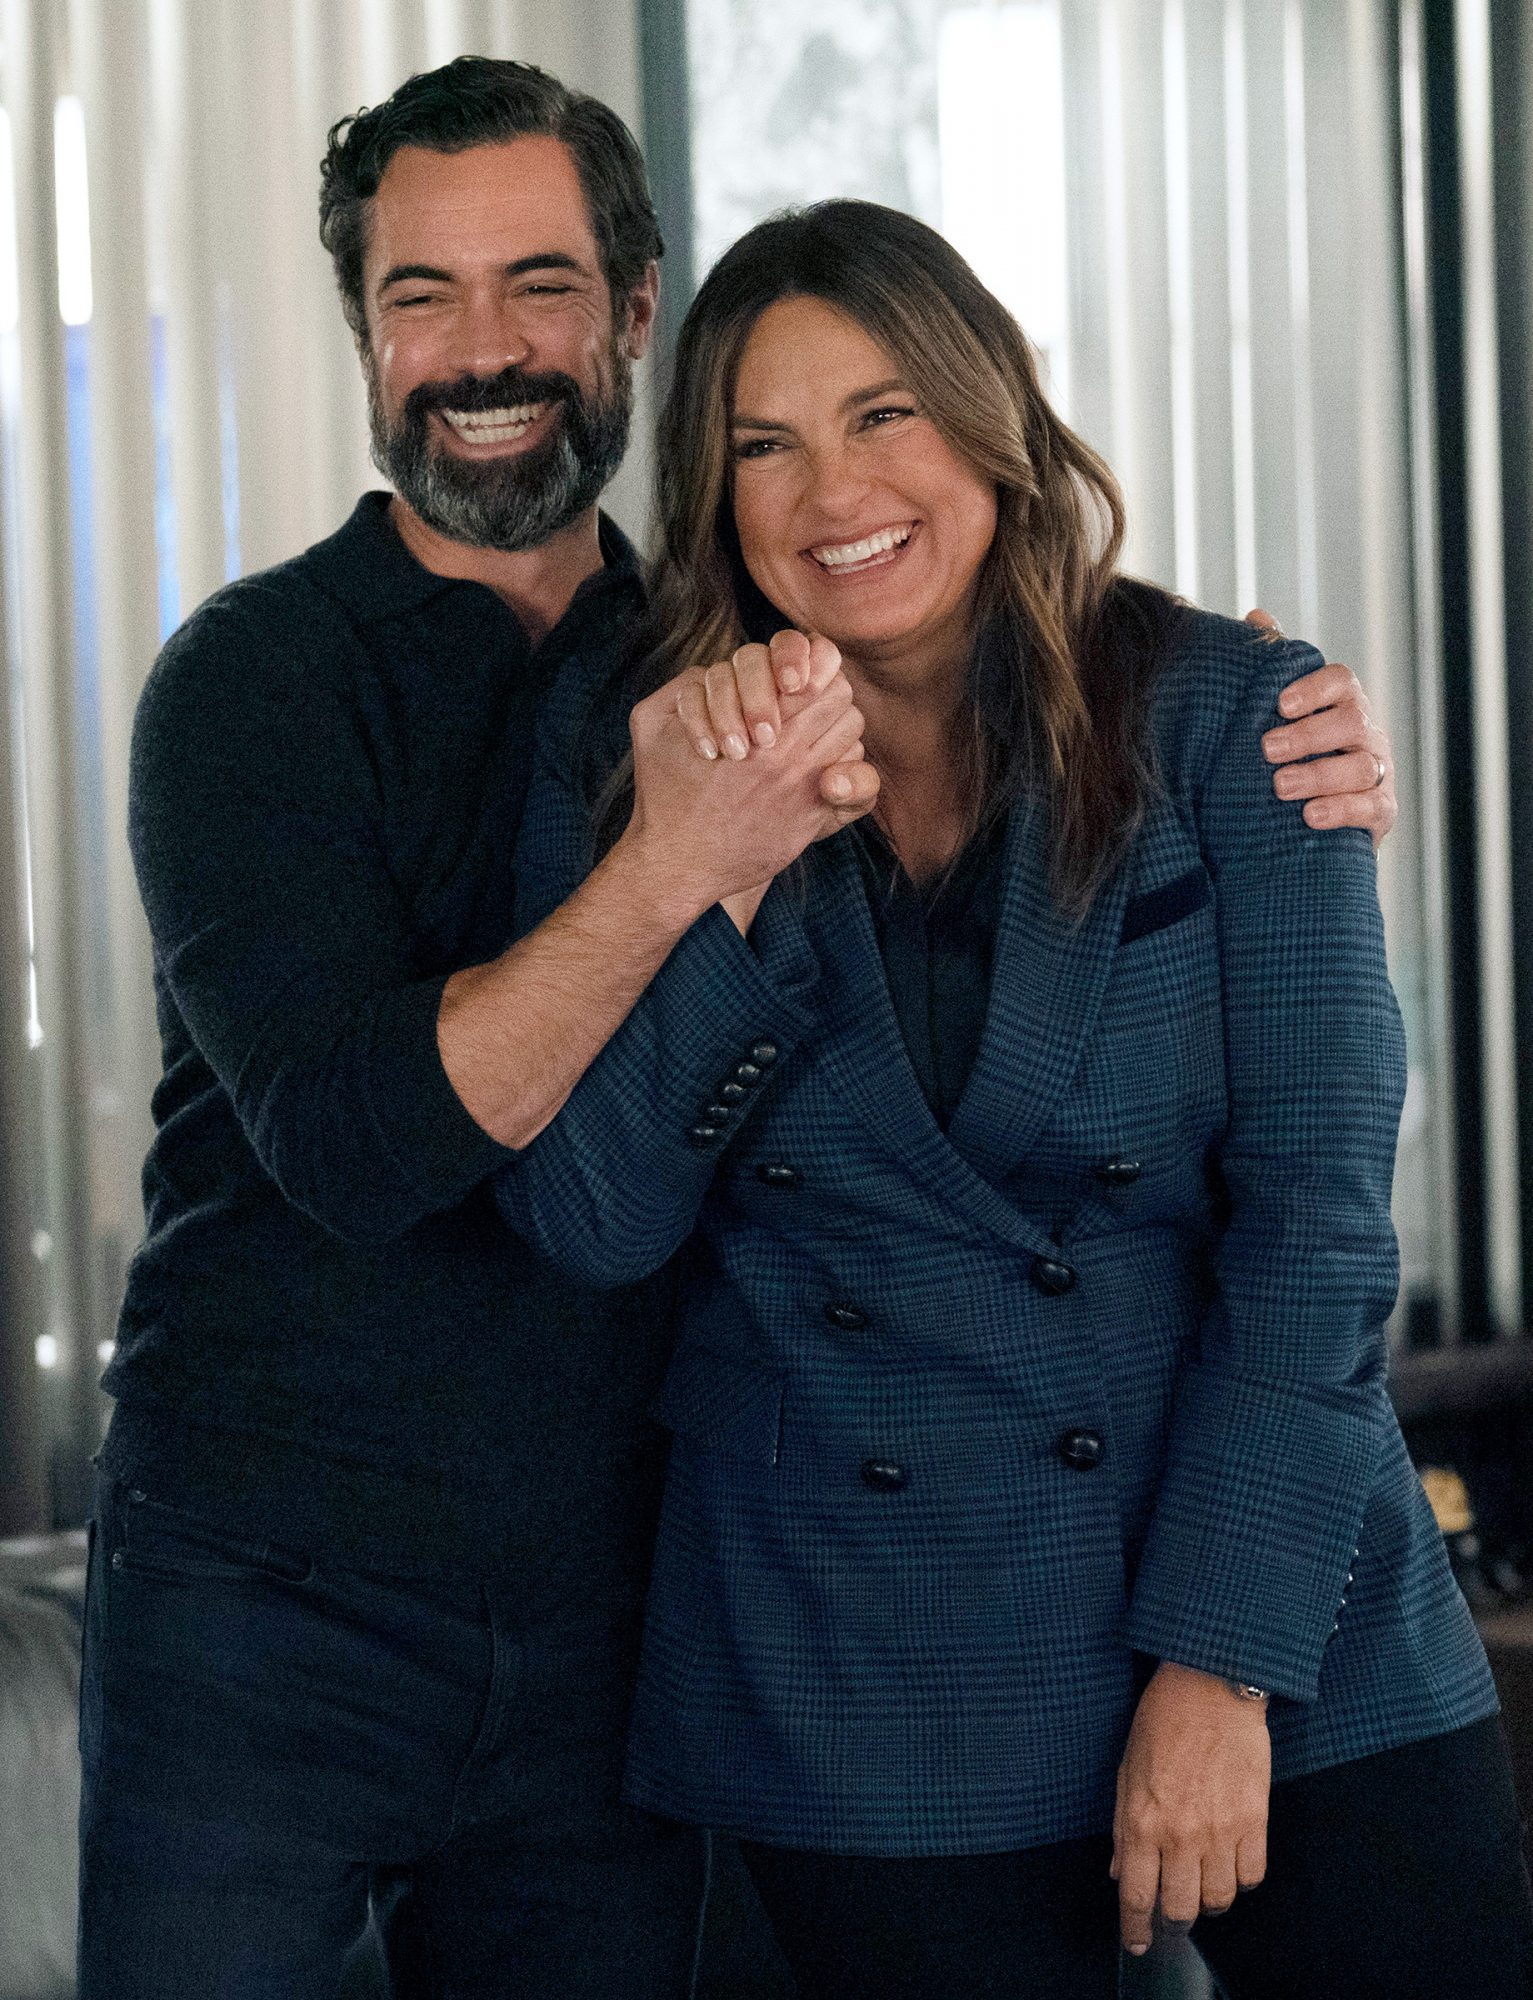 """LAW & ORDER: SPECIAL VICTIMS UNIT -- """"The Five Hundredth Episode"""" Episode 23006 -- Pictured: (l-r) Danny Pino as Nick Amaro, Mariska Hargitay as Captain Olivia Benson -- (Photo by: Virginia Sherwood/NBC)"""